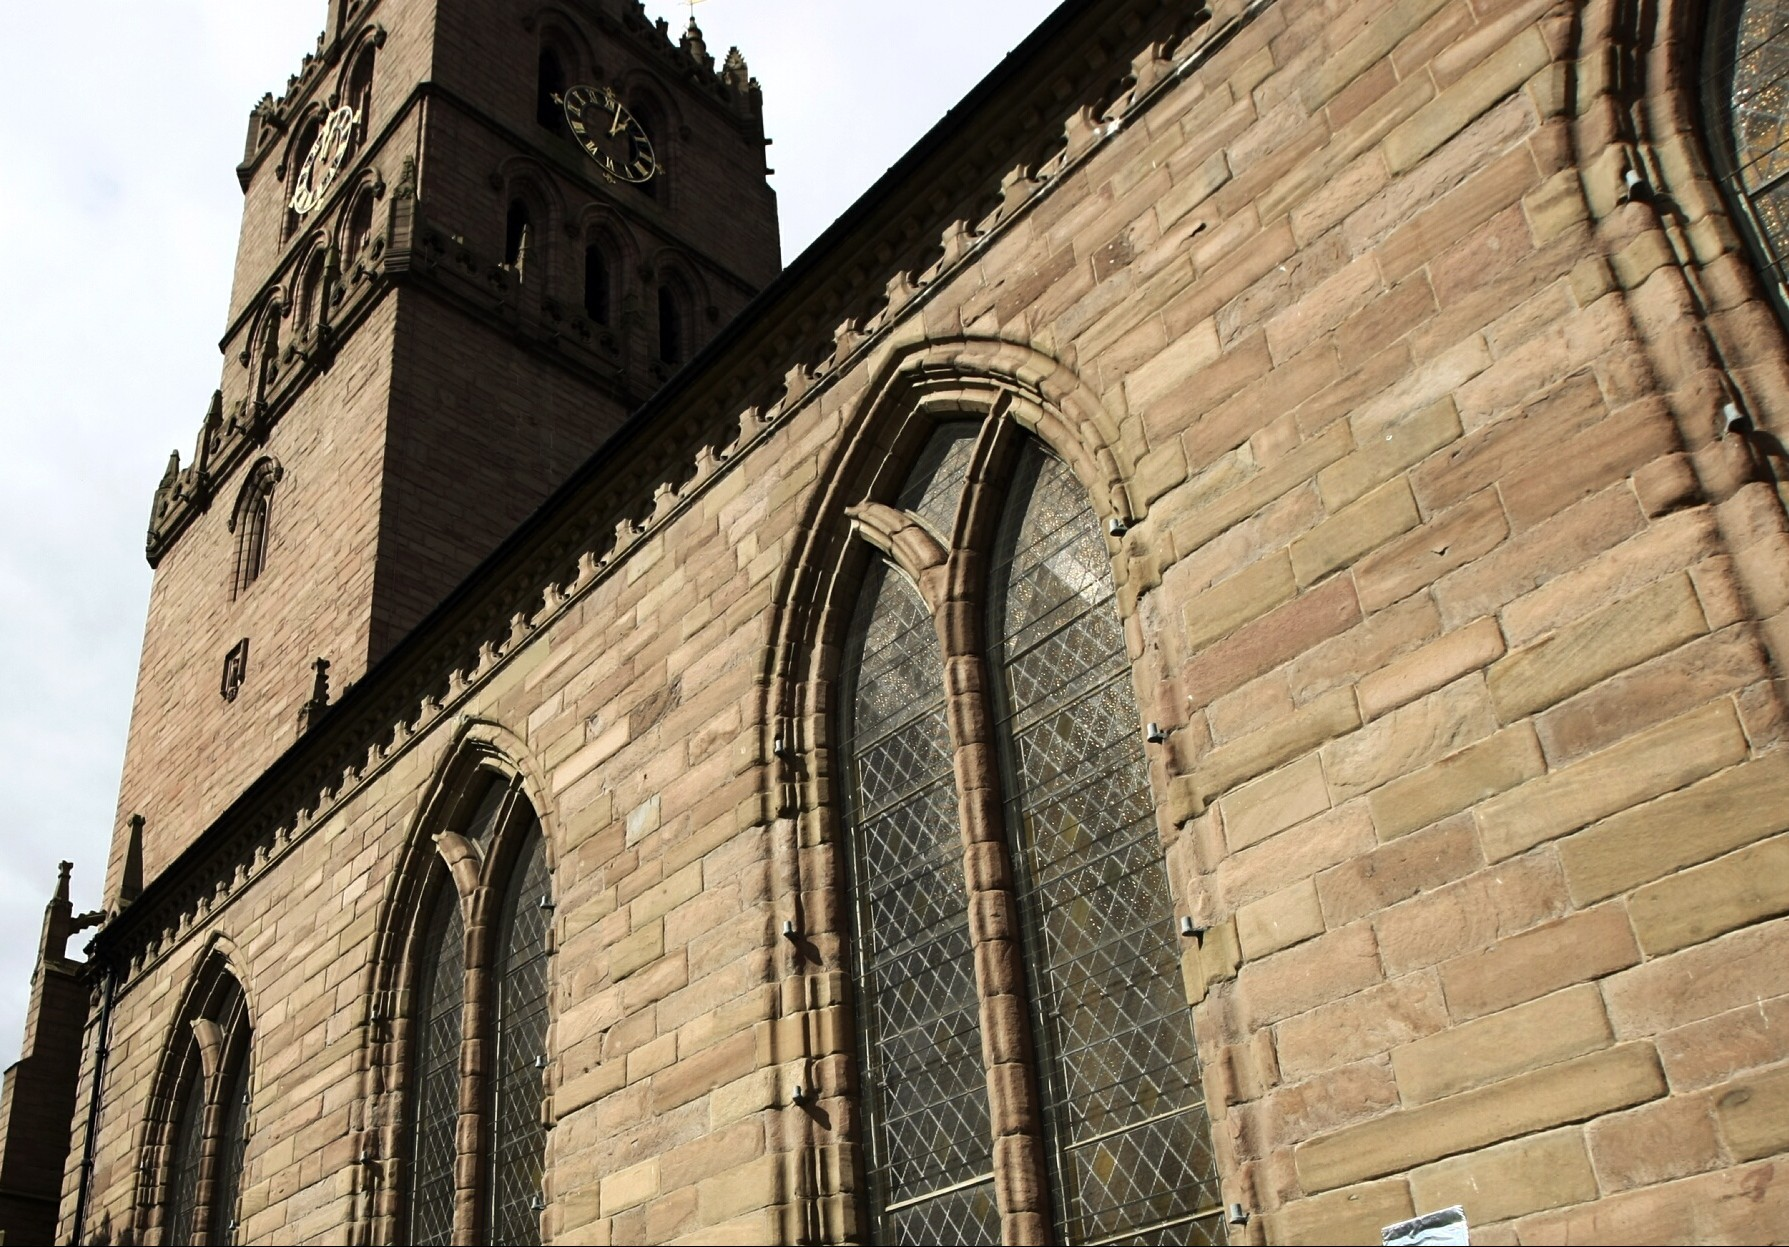 The Steeple Church in Dundee.